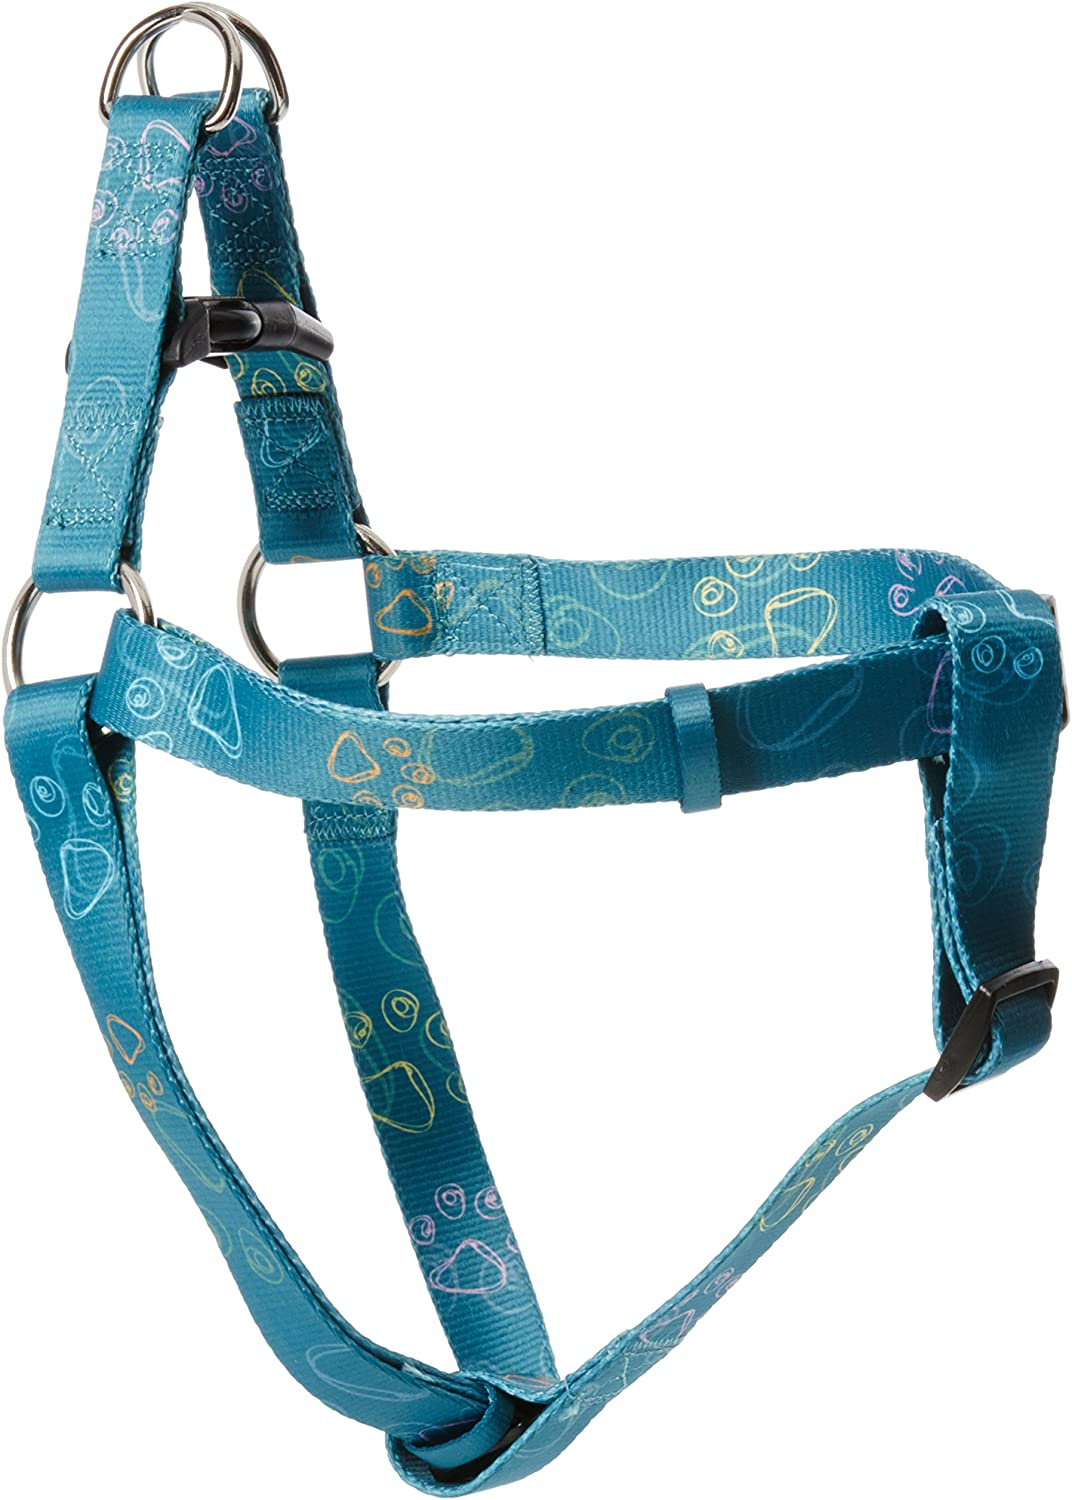 Trixie Jimmy One Touch Perro Harness-Parent: Amazon.es: Productos ...